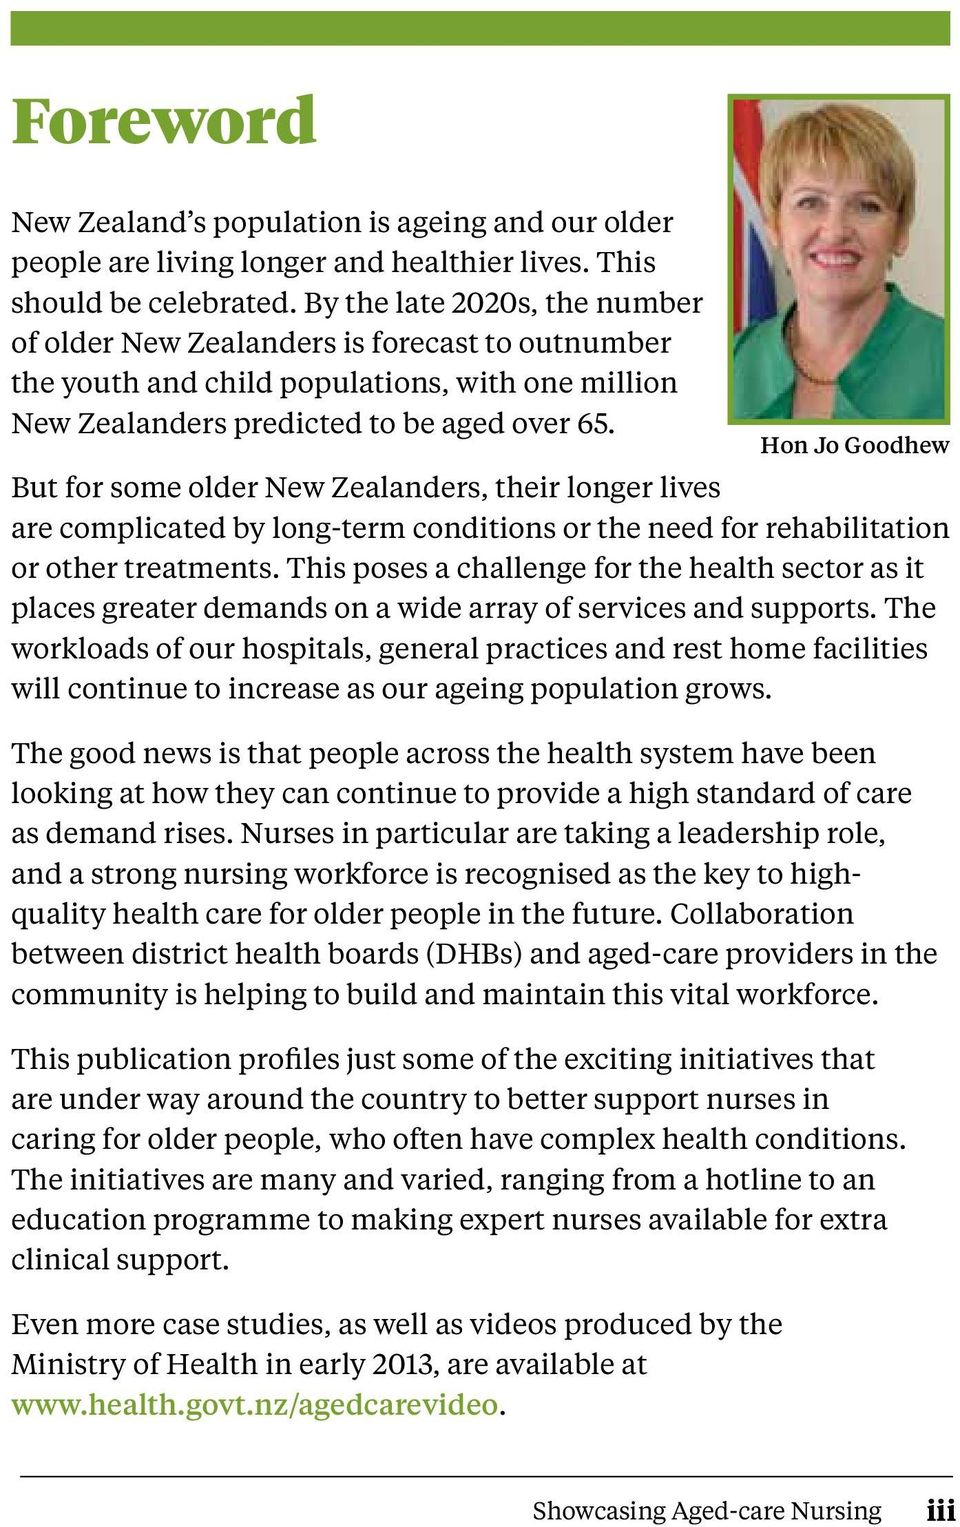 But for some older New Zealanders, their longer lives are complicated by long-term conditions or the need for rehabilitation or other treatments.